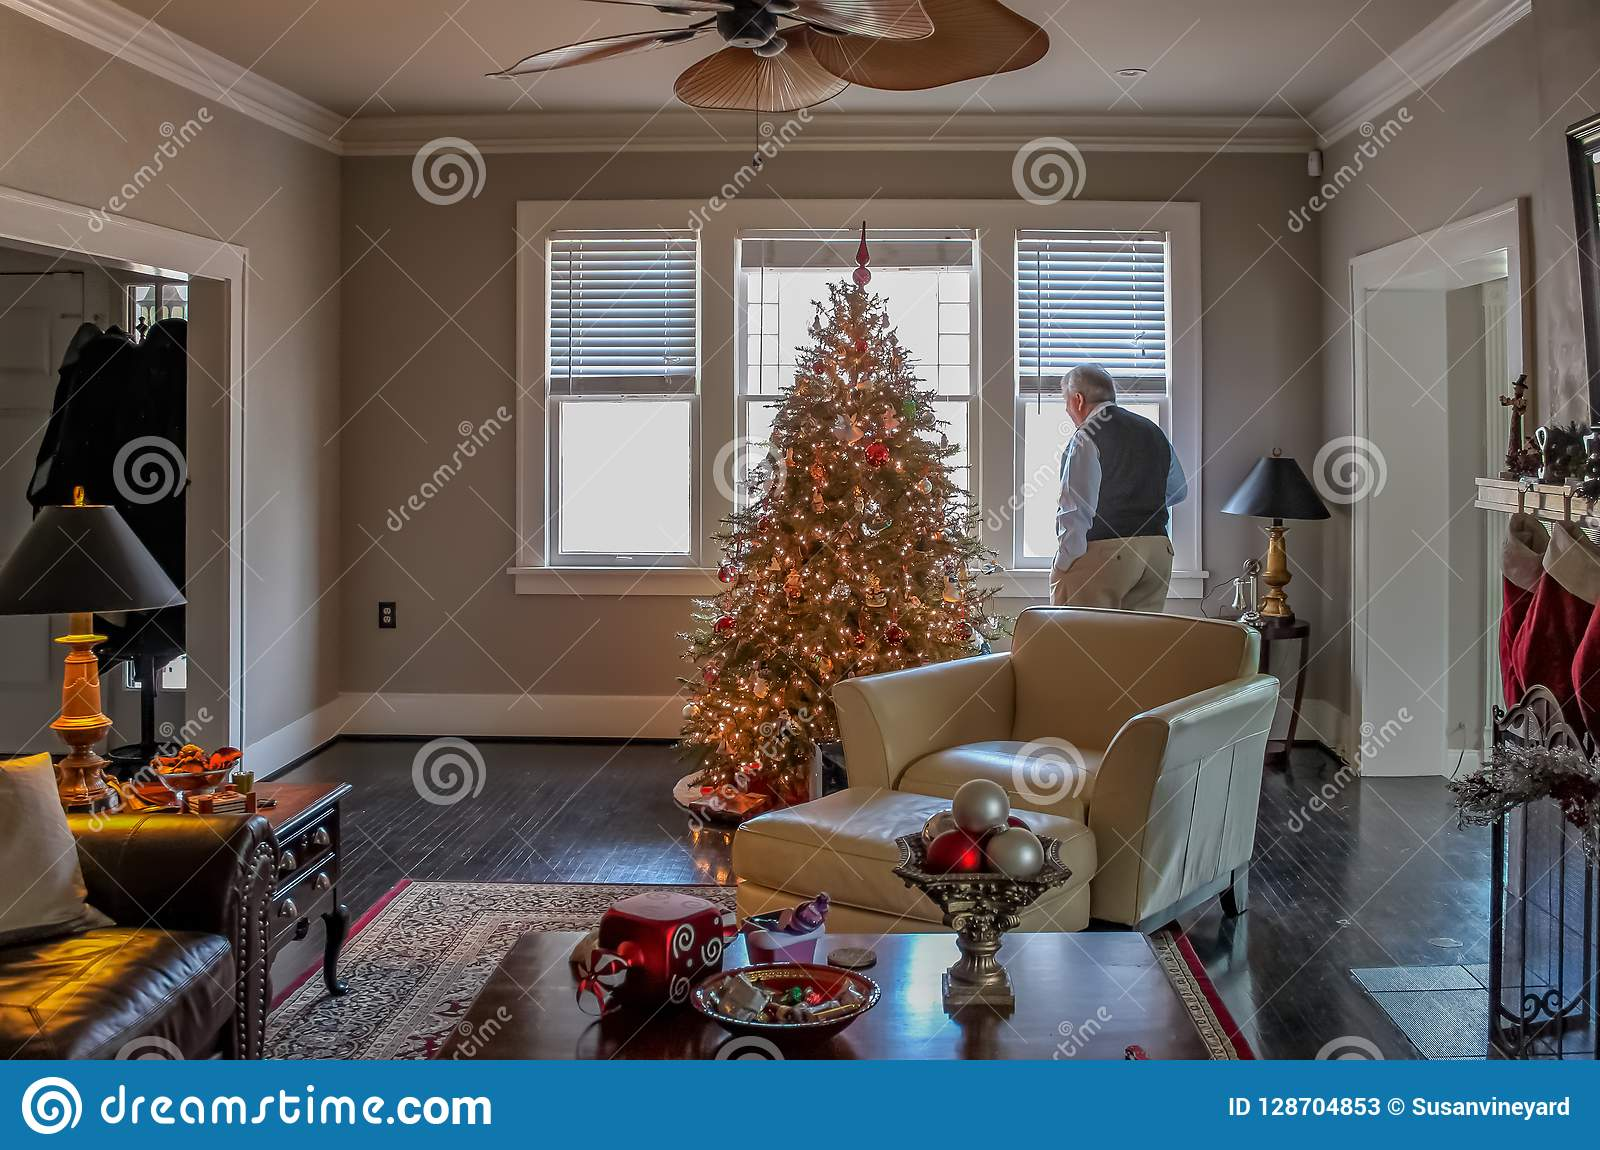 Inside elegant home decorated for Christmas with tree and stockings an older man looks out window